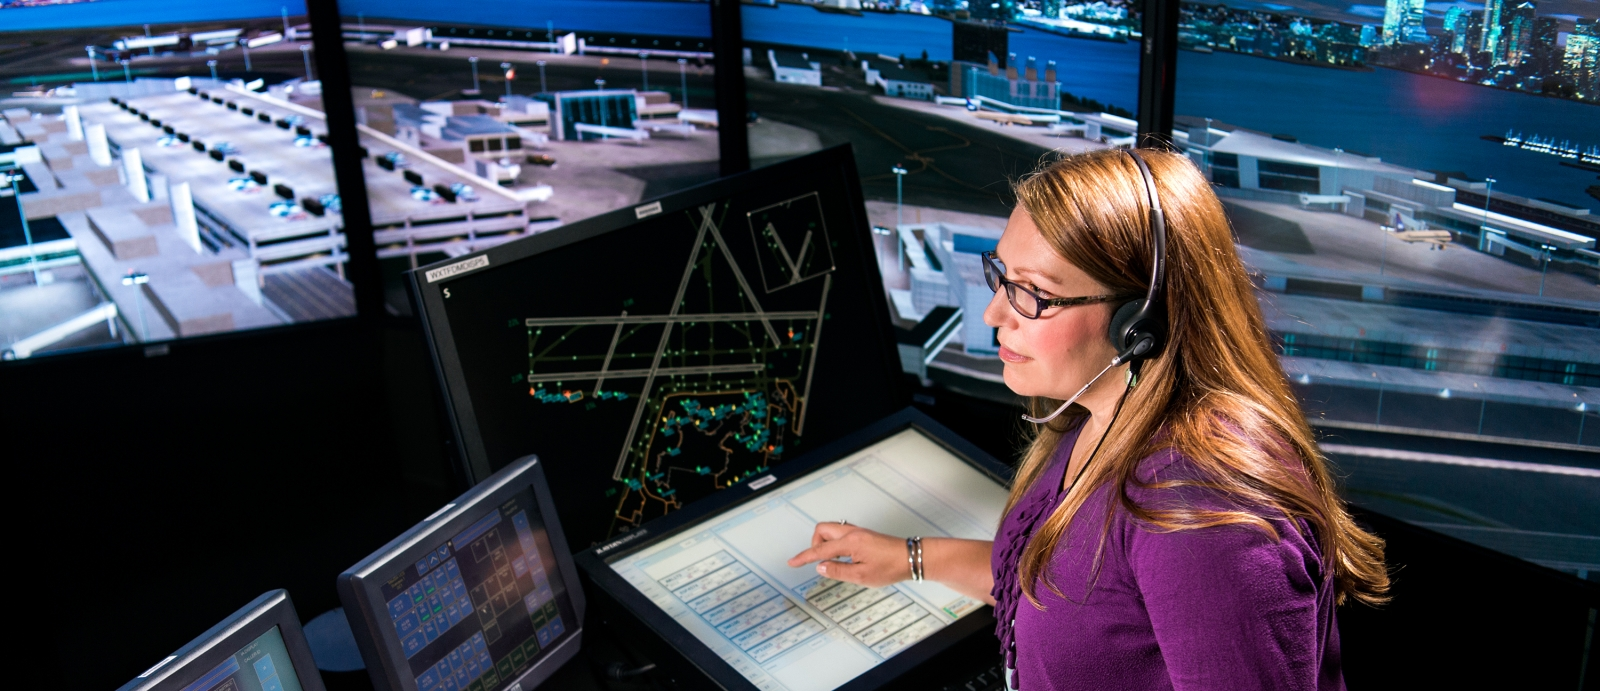 In the control tower simulation facility, an Air Traffic Control Systems staff member uses integrated electronic flight data and surveillance systems to direct an aircraft to taxi toward the runway.